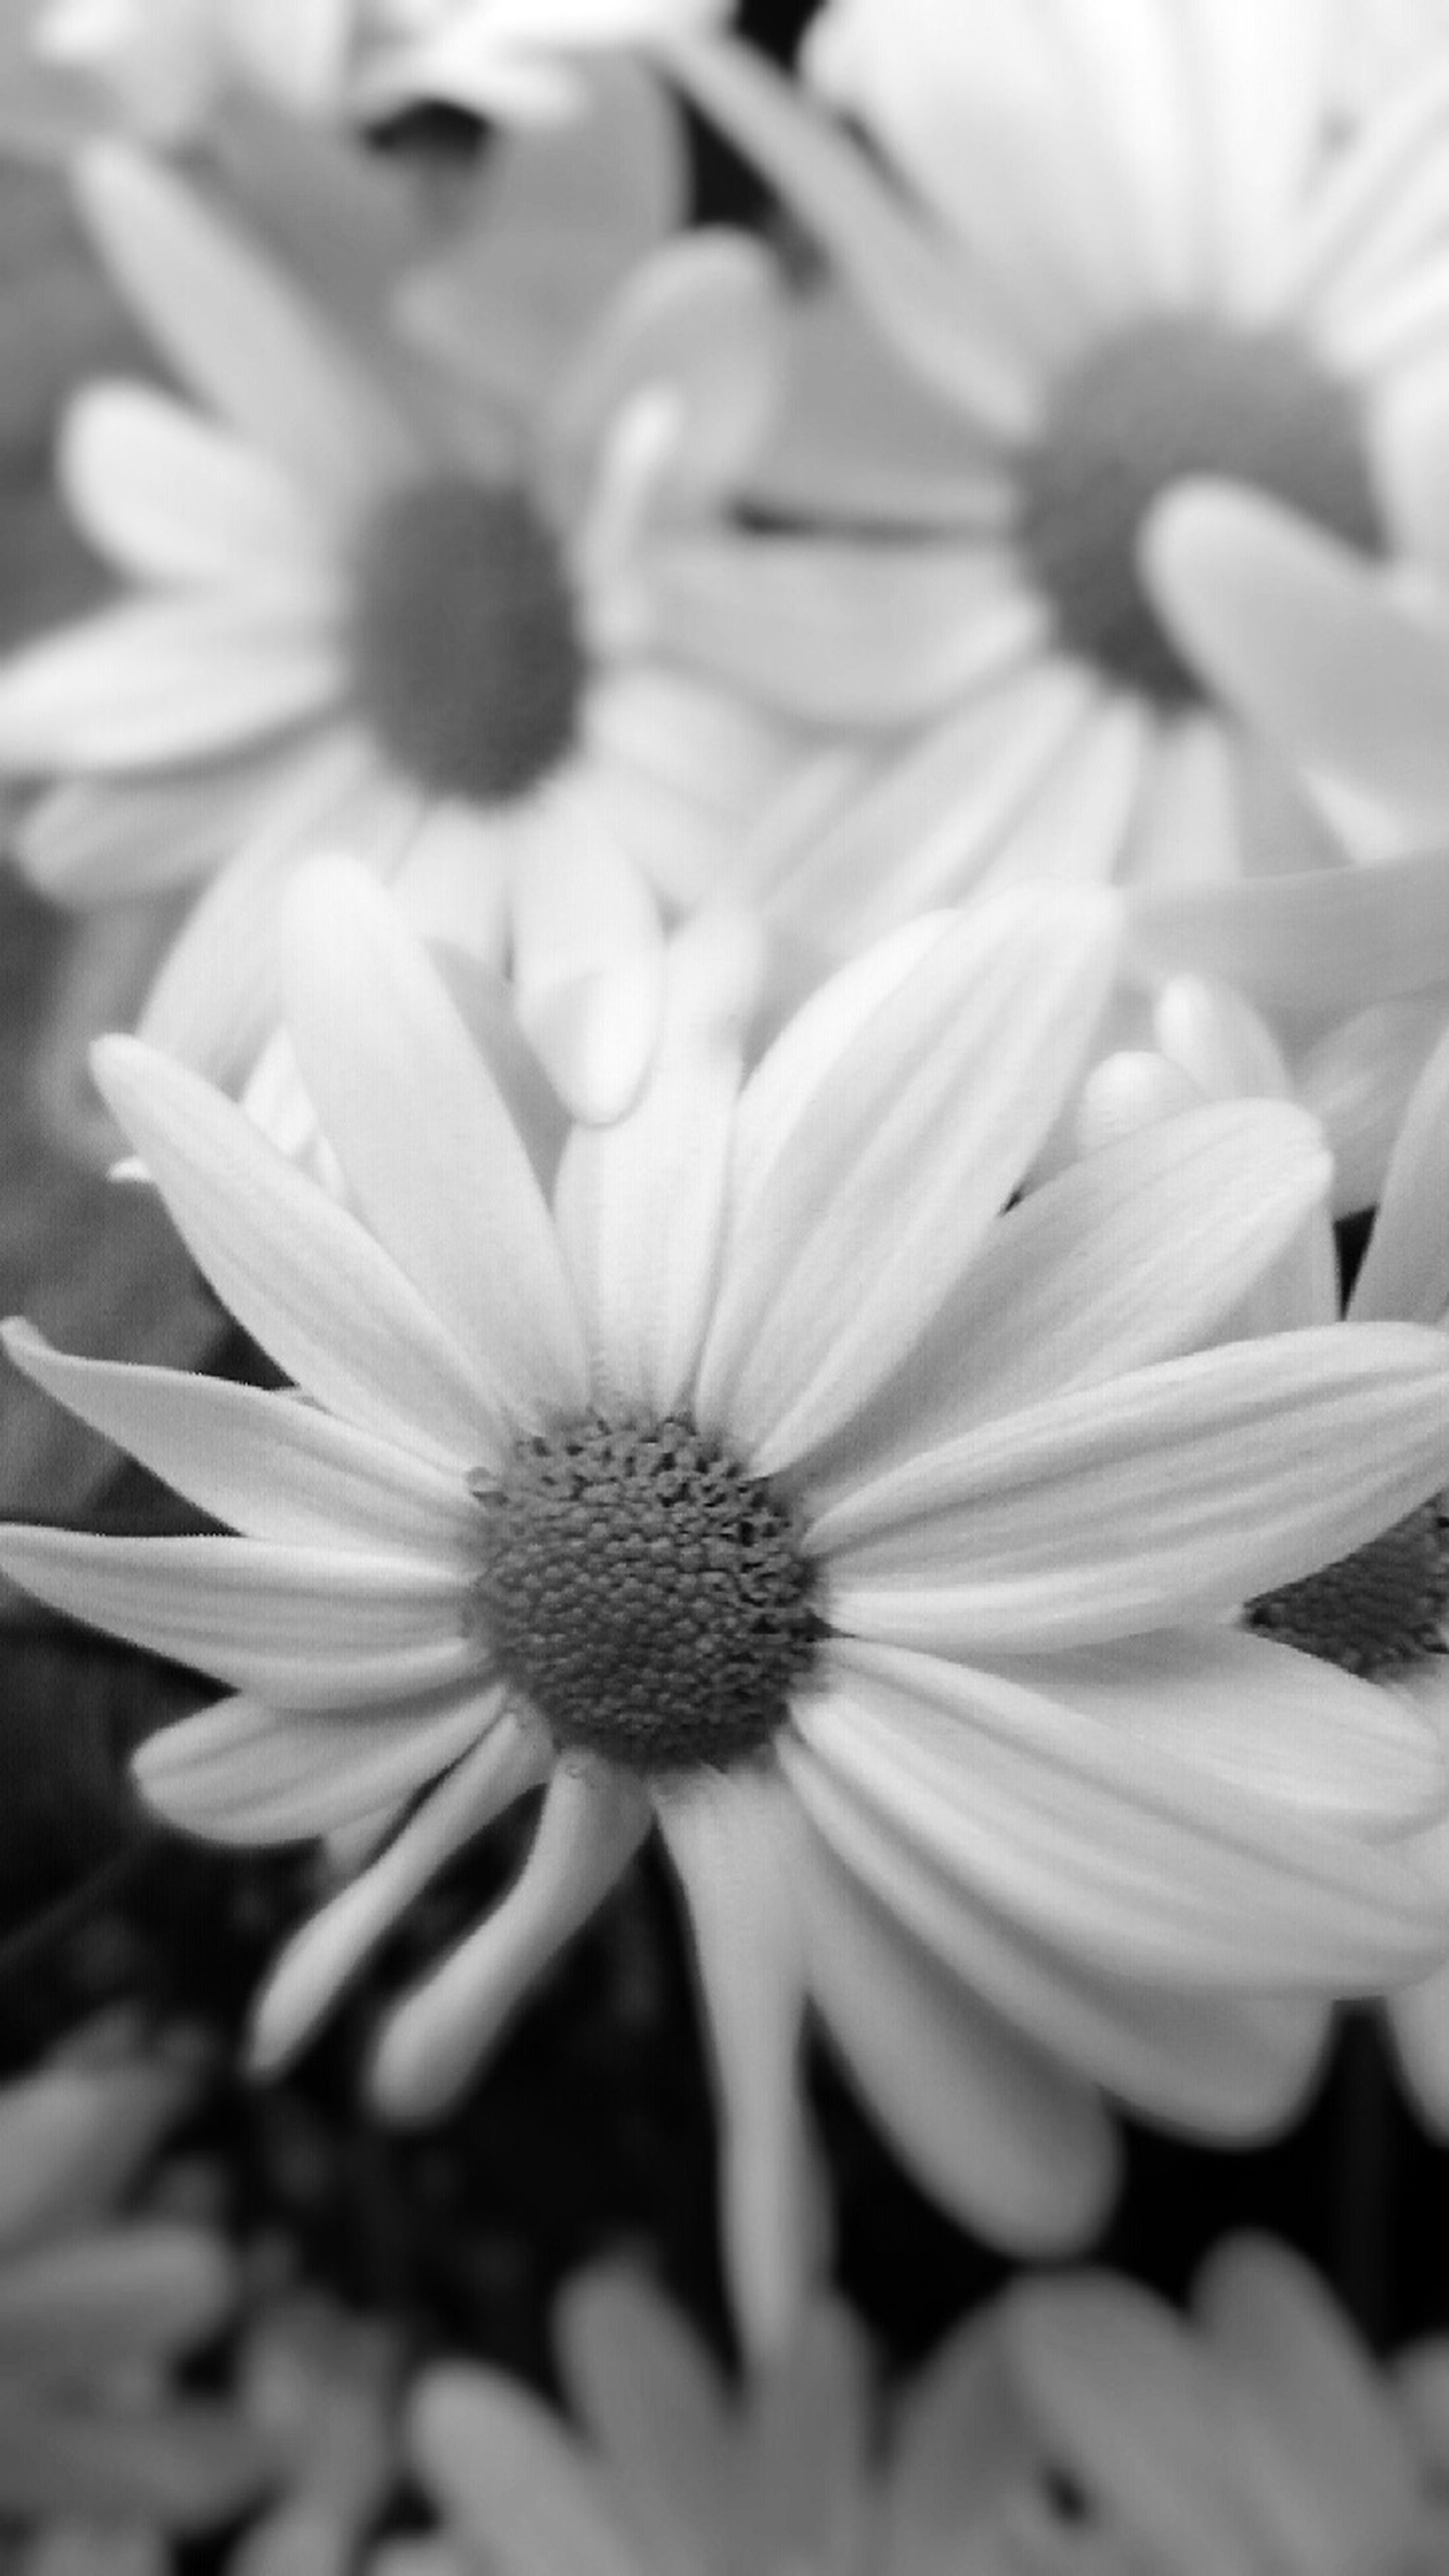 flower, petal, freshness, flower head, fragility, growth, beauty in nature, pollen, close-up, blooming, nature, daisy, focus on foreground, plant, in bloom, single flower, selective focus, stamen, white color, yellow